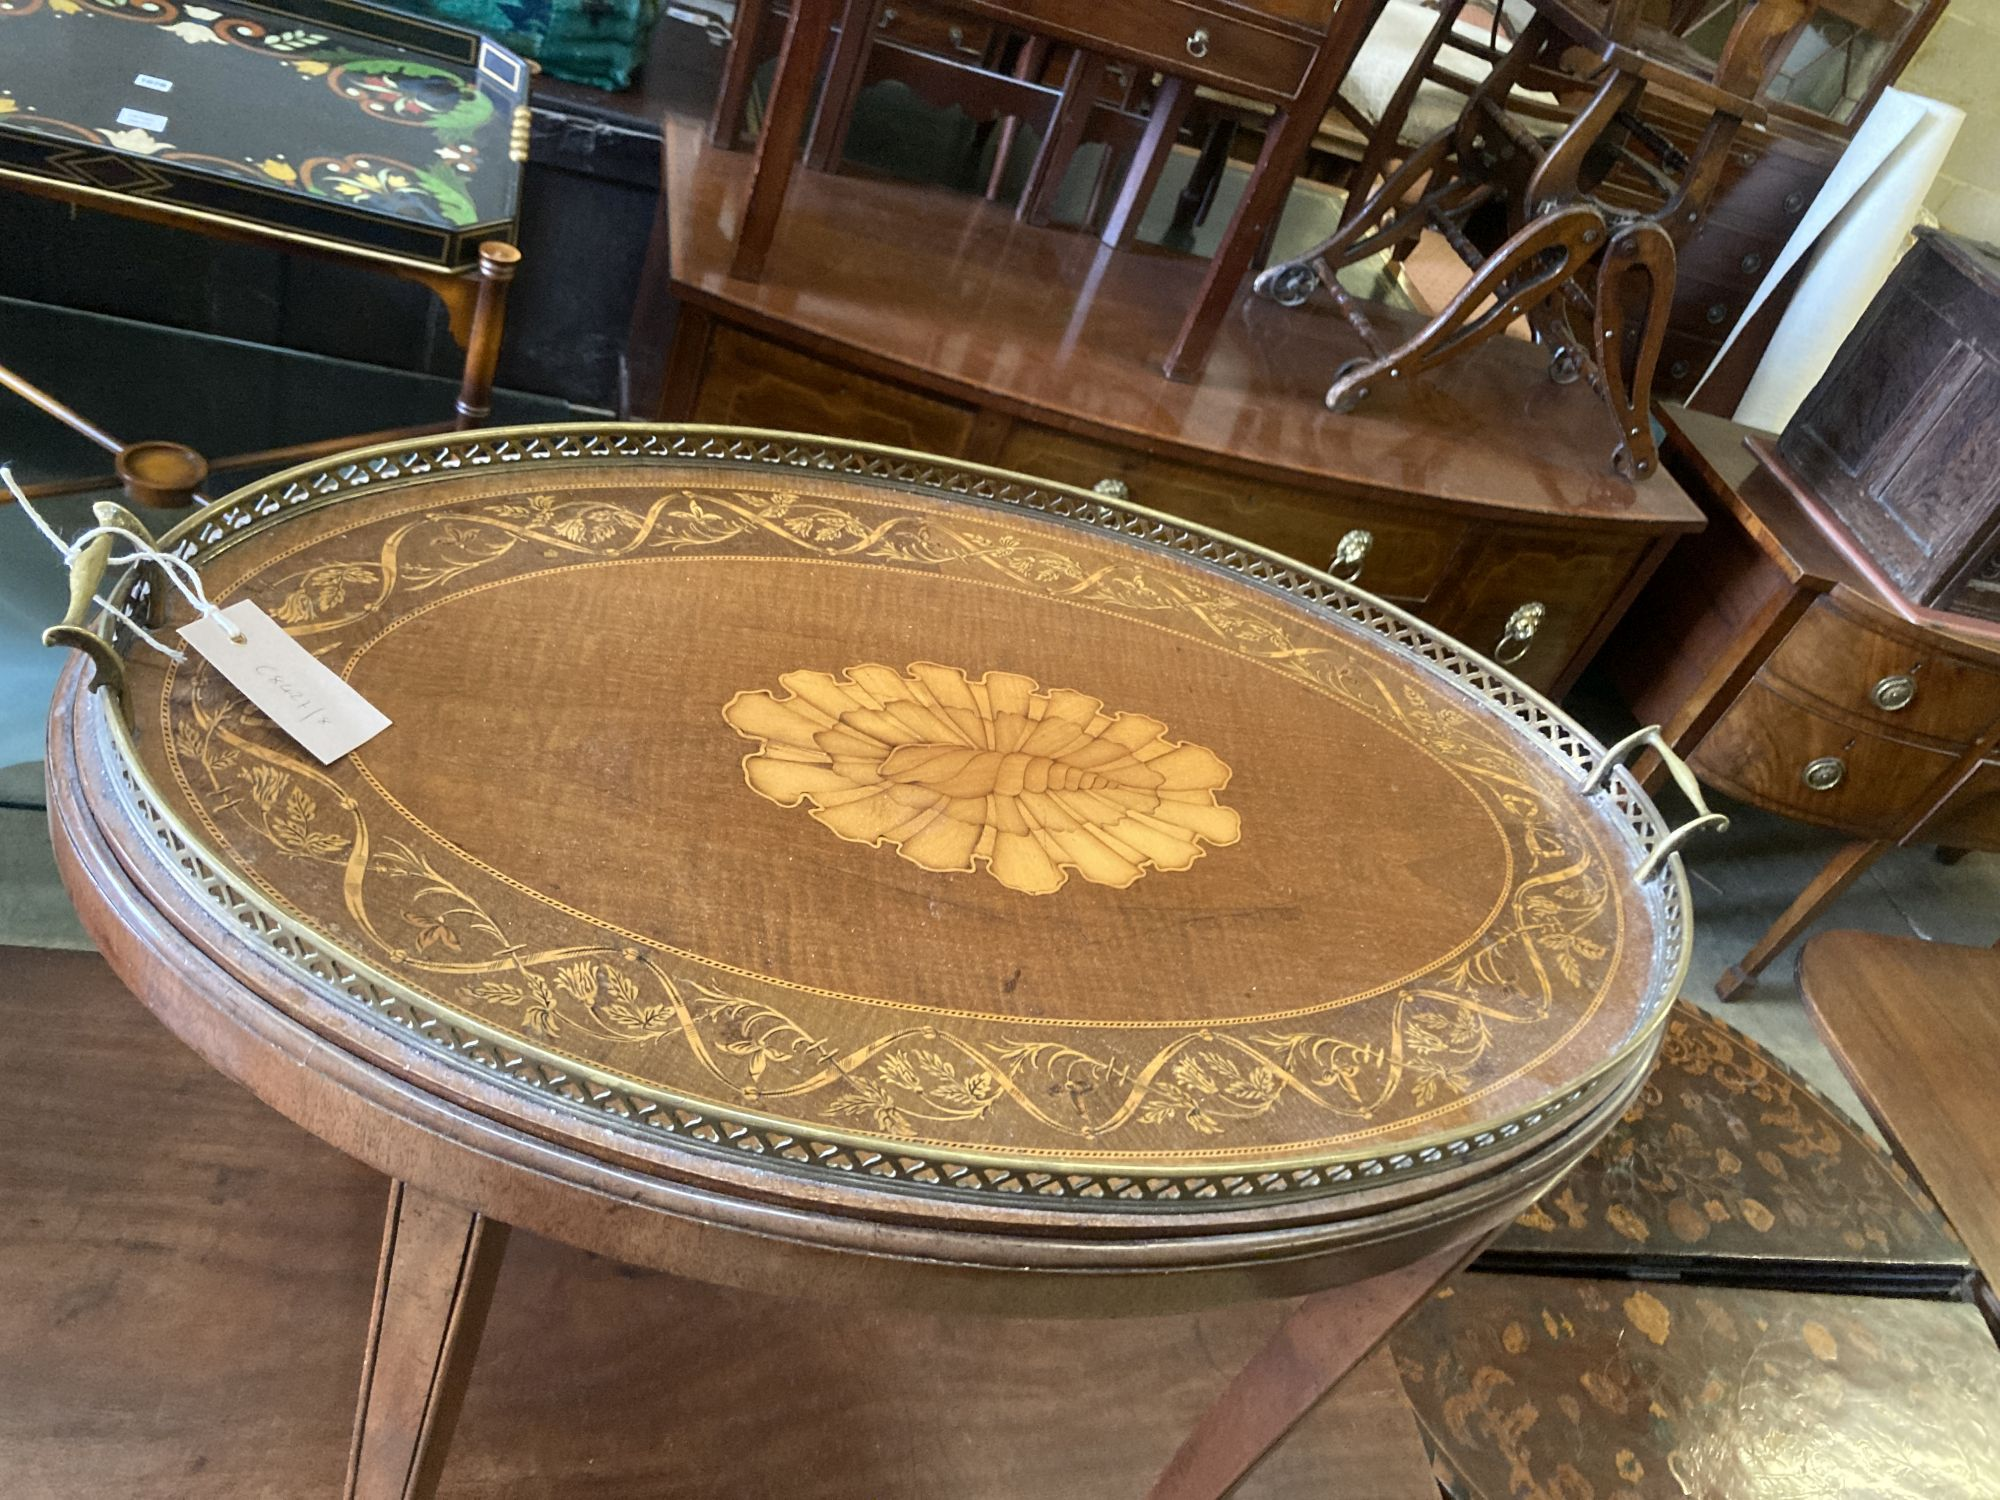 An Edwardian inlaid oval tray top, on later stand, width 70cm depth 46cm height 57cm - Image 2 of 3